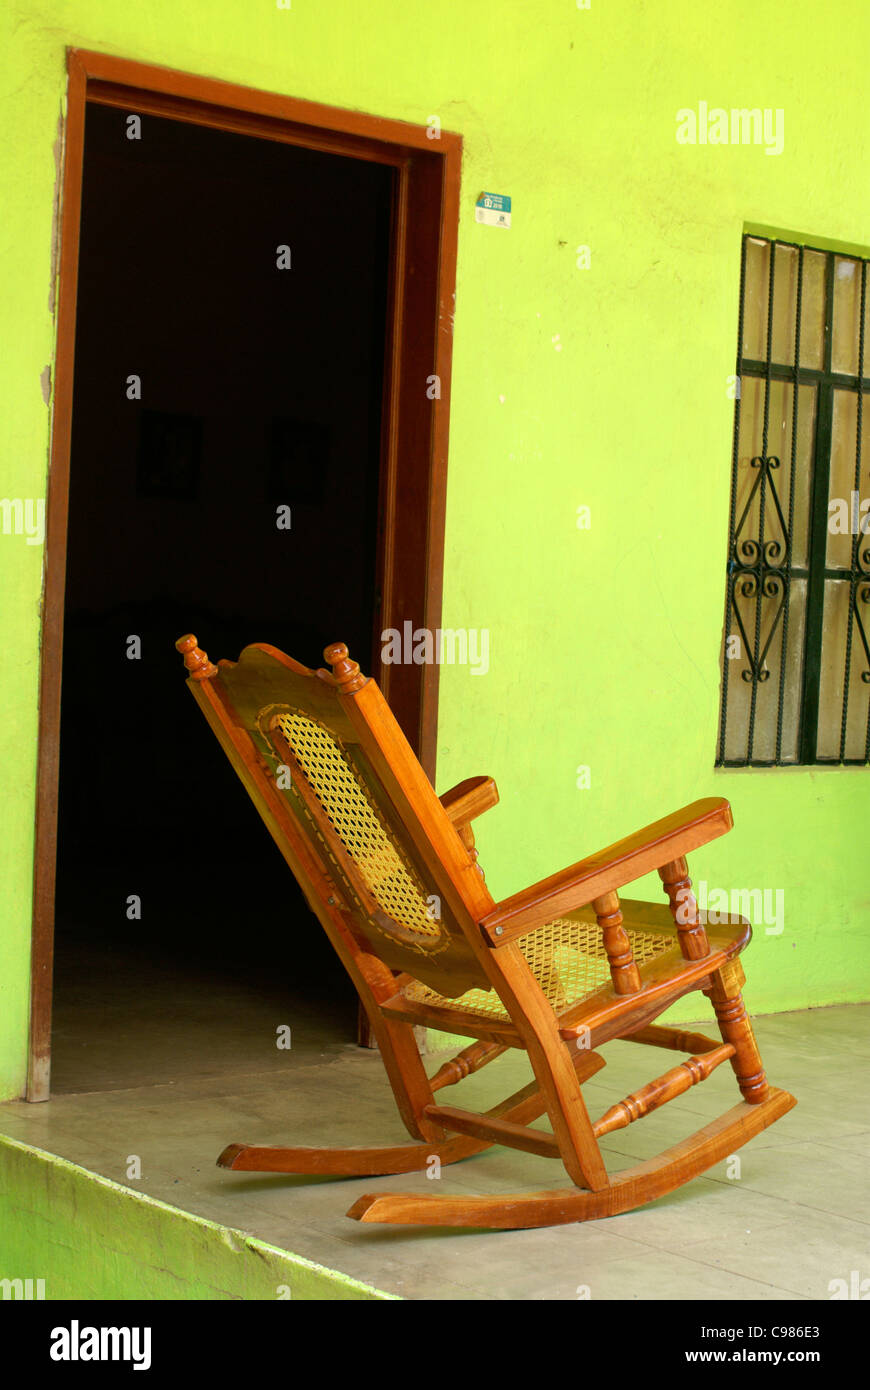 Mexico Chair Schaukelstuhl In A Rocking Chair On A Porch Stock Photos In A Rocking Chair On